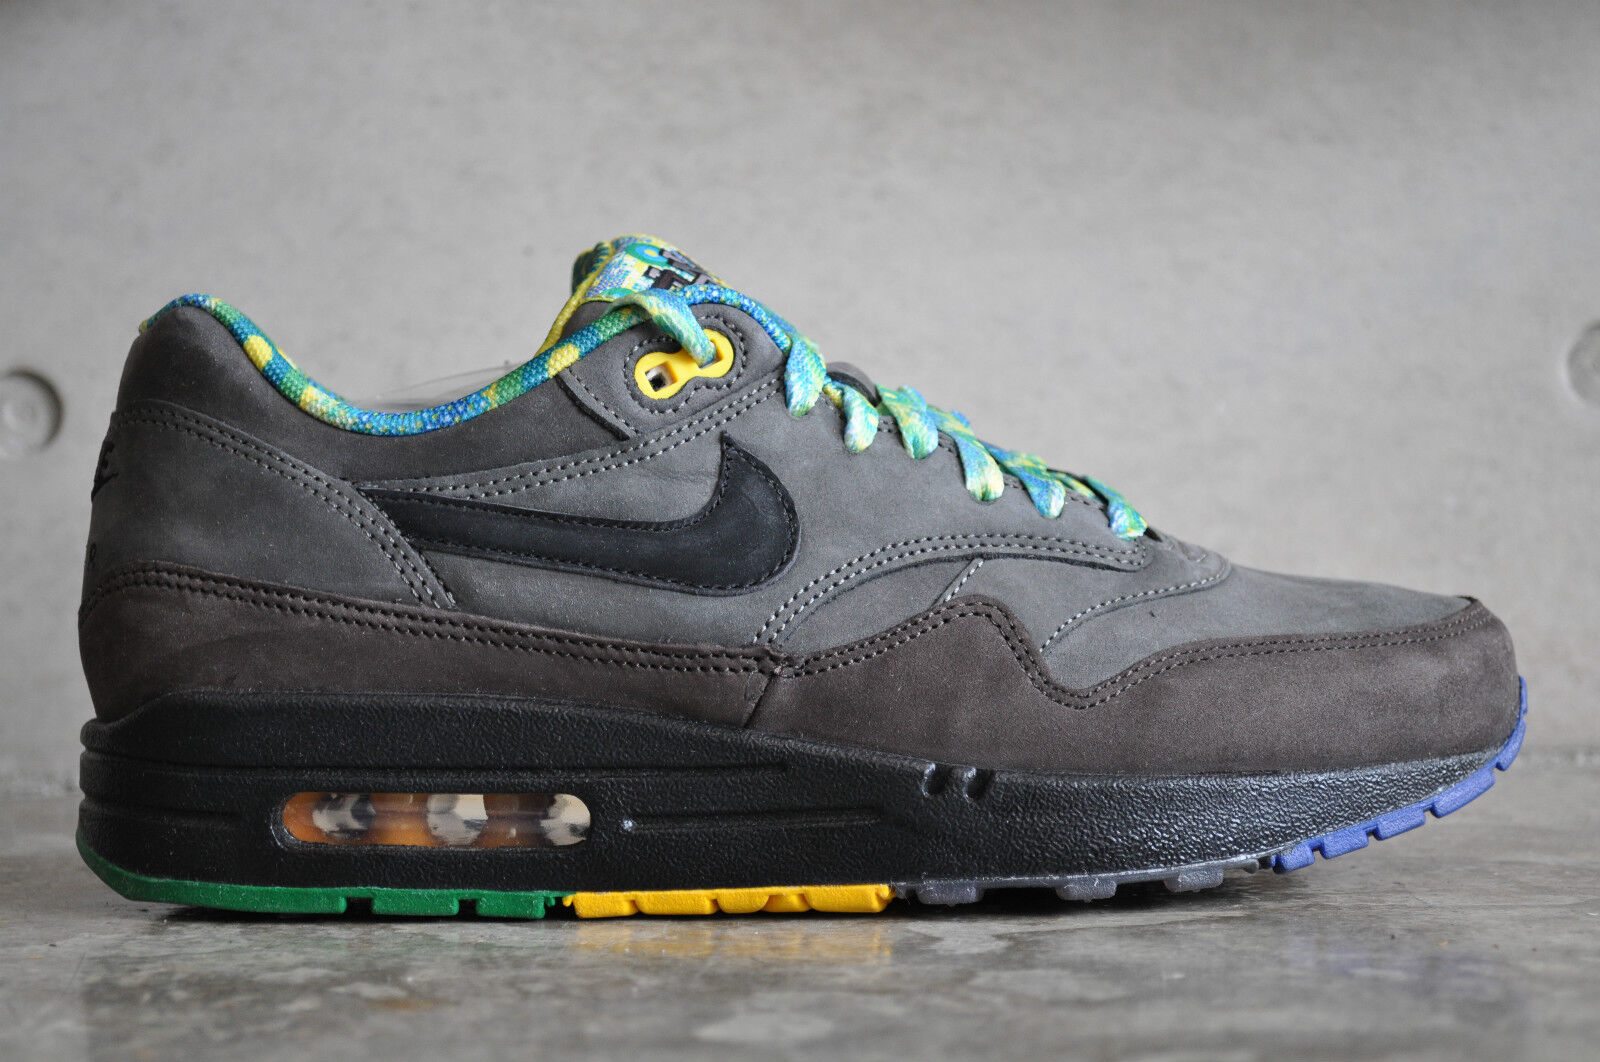 Nike Air Max 1 BHM Noir History Month - Midnight Fog/Noir